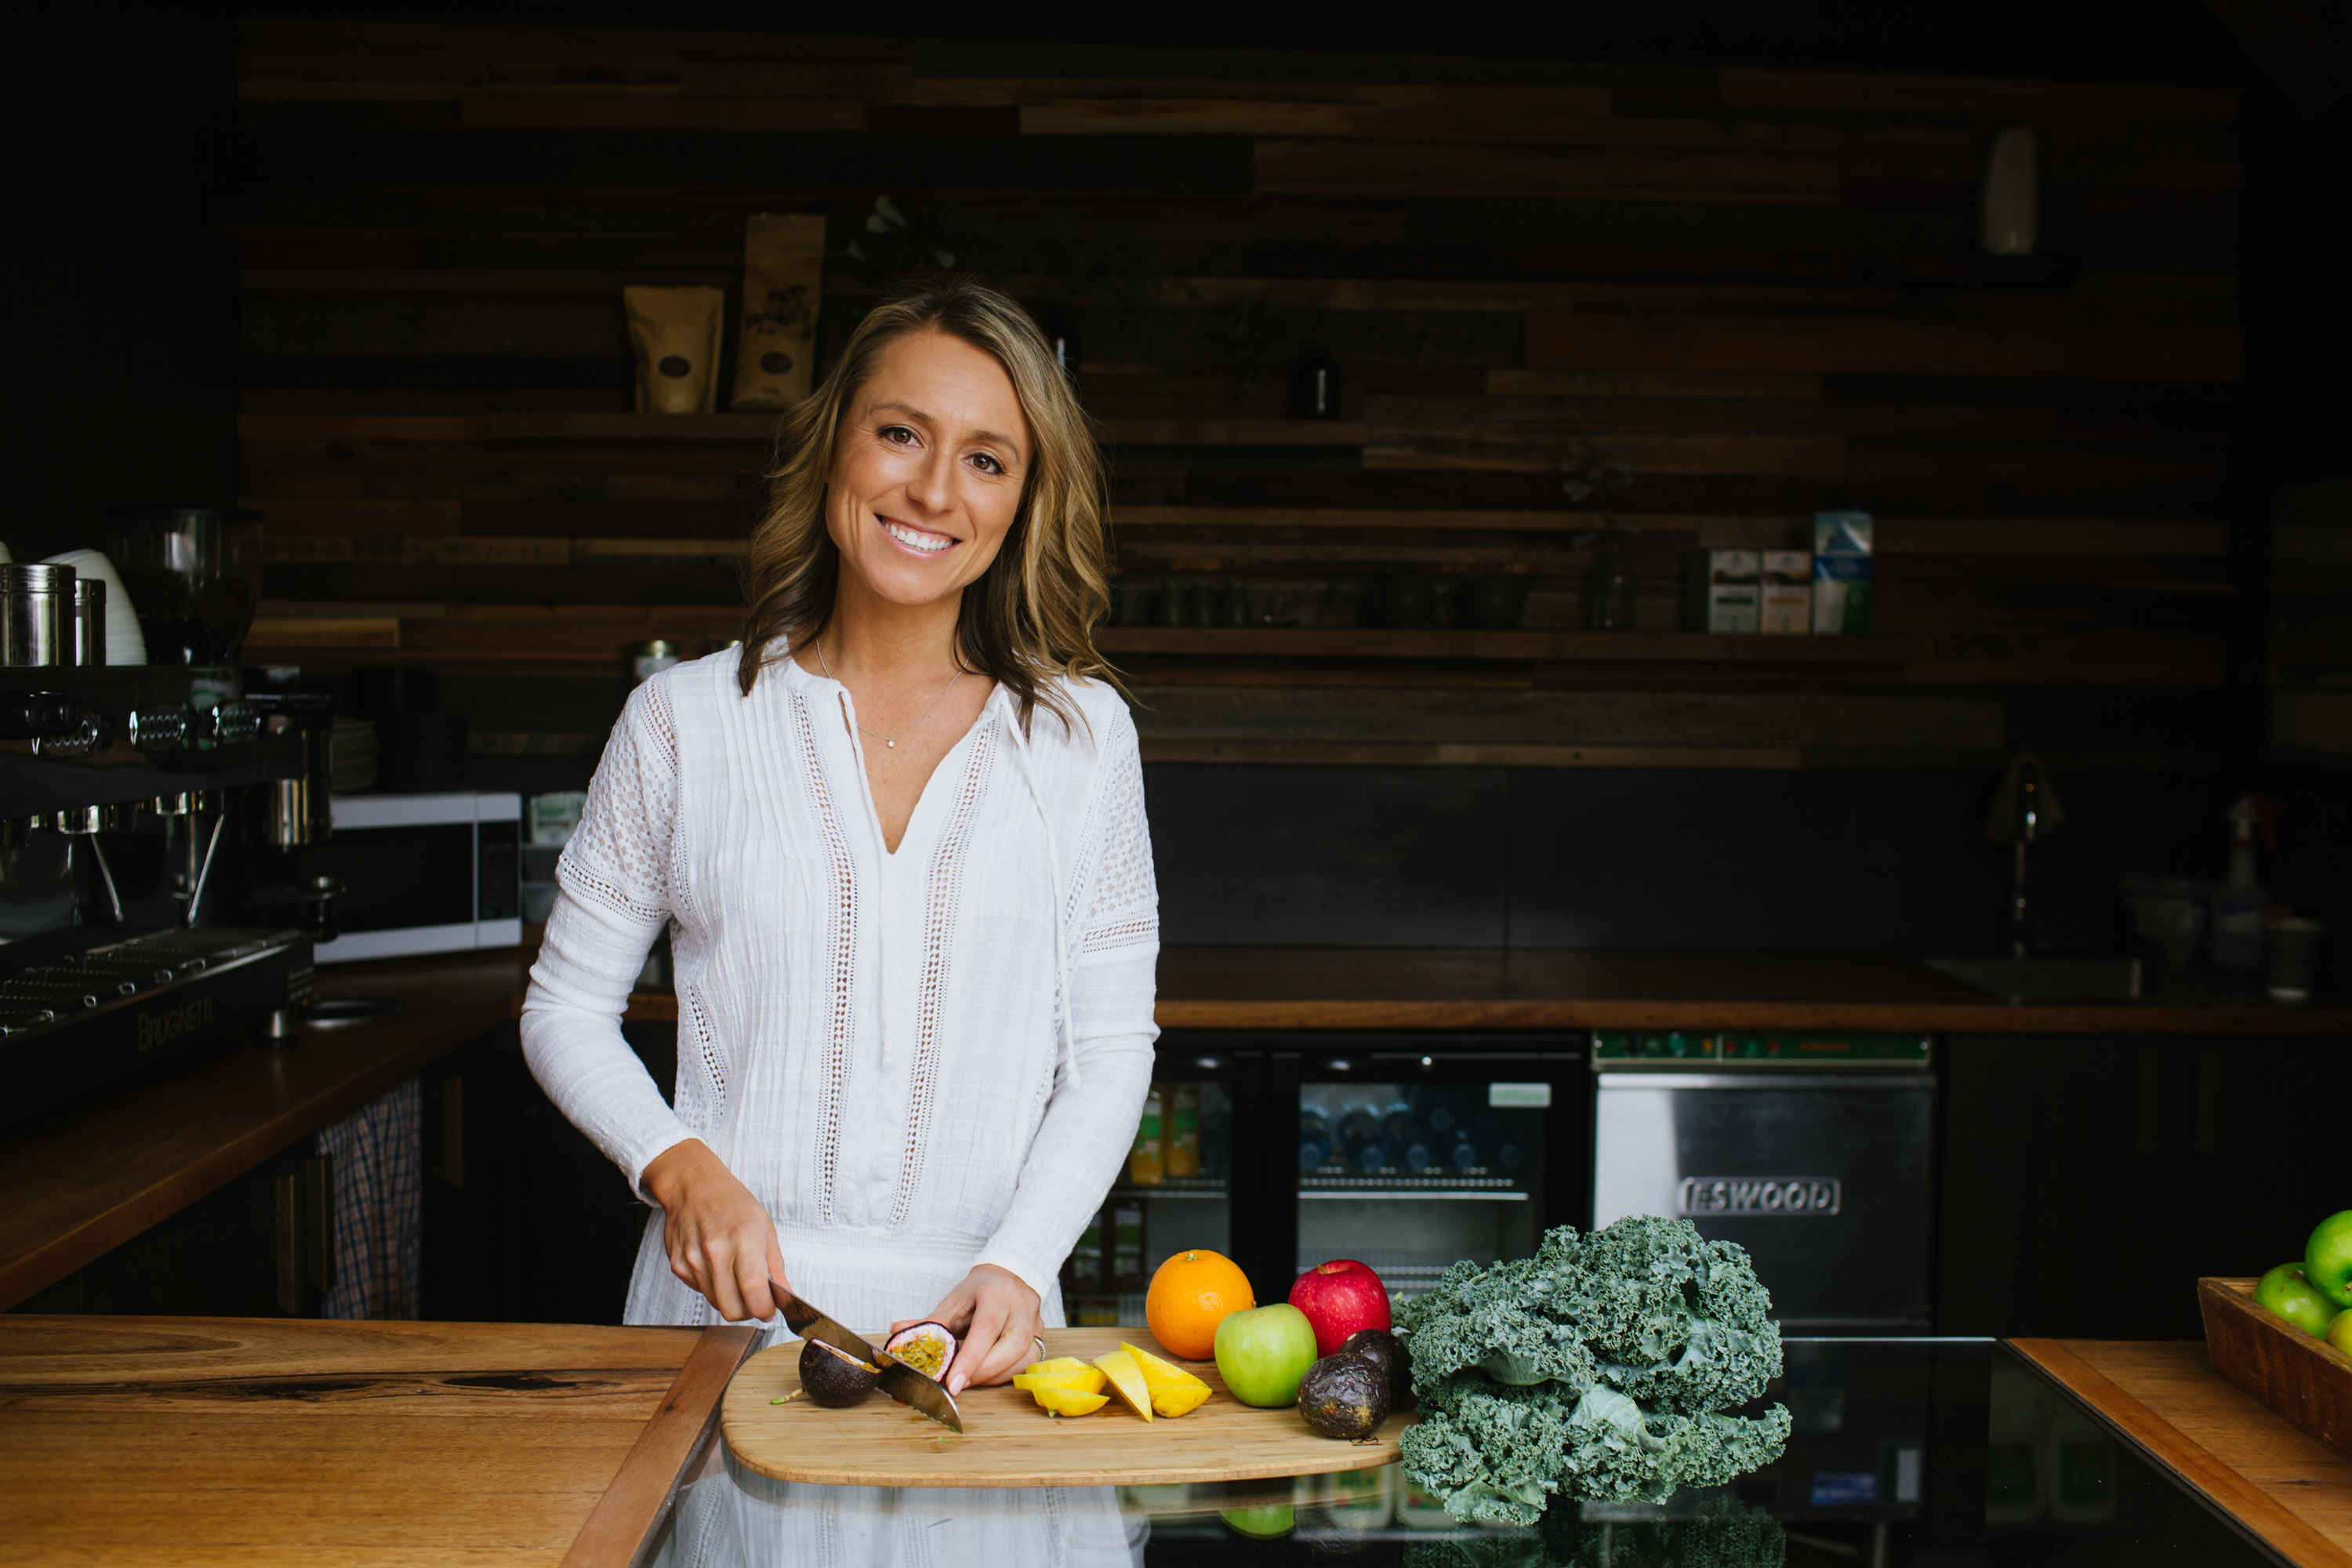 Onyapreneur: Kate Save, CEO & Co-Founder of Be Fit Food